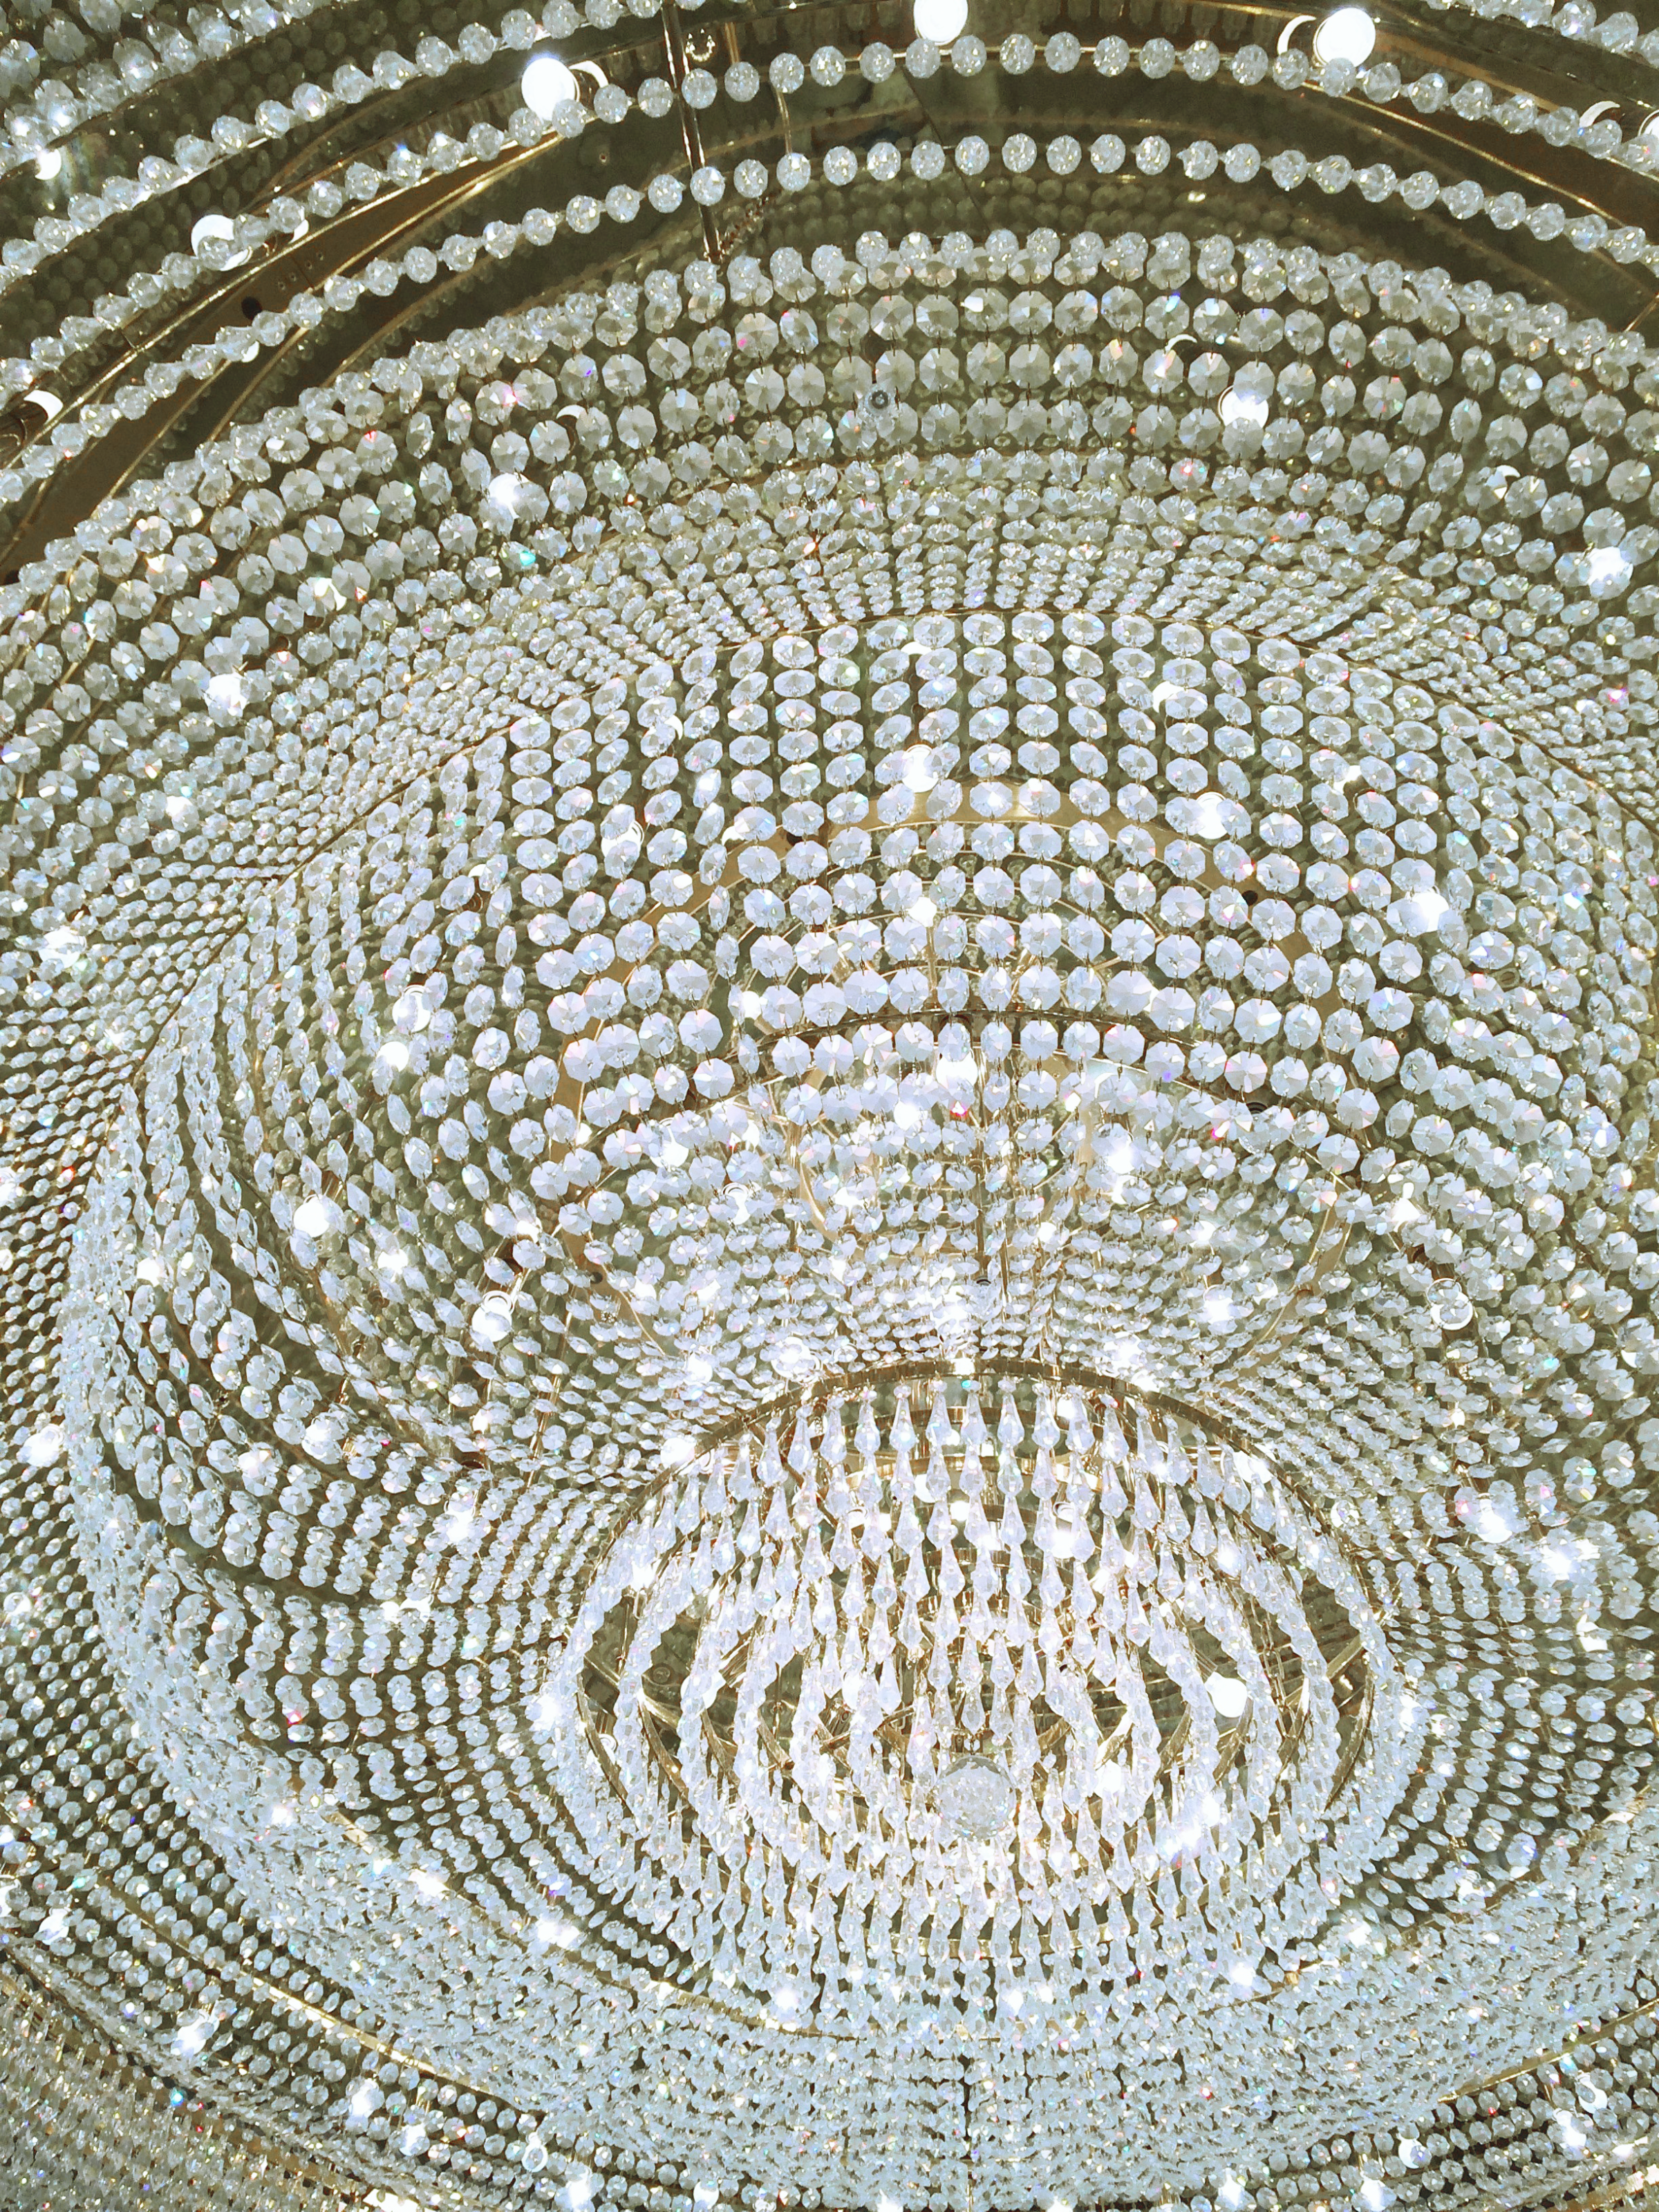 A close-up shot of a crystal chandelier from below.